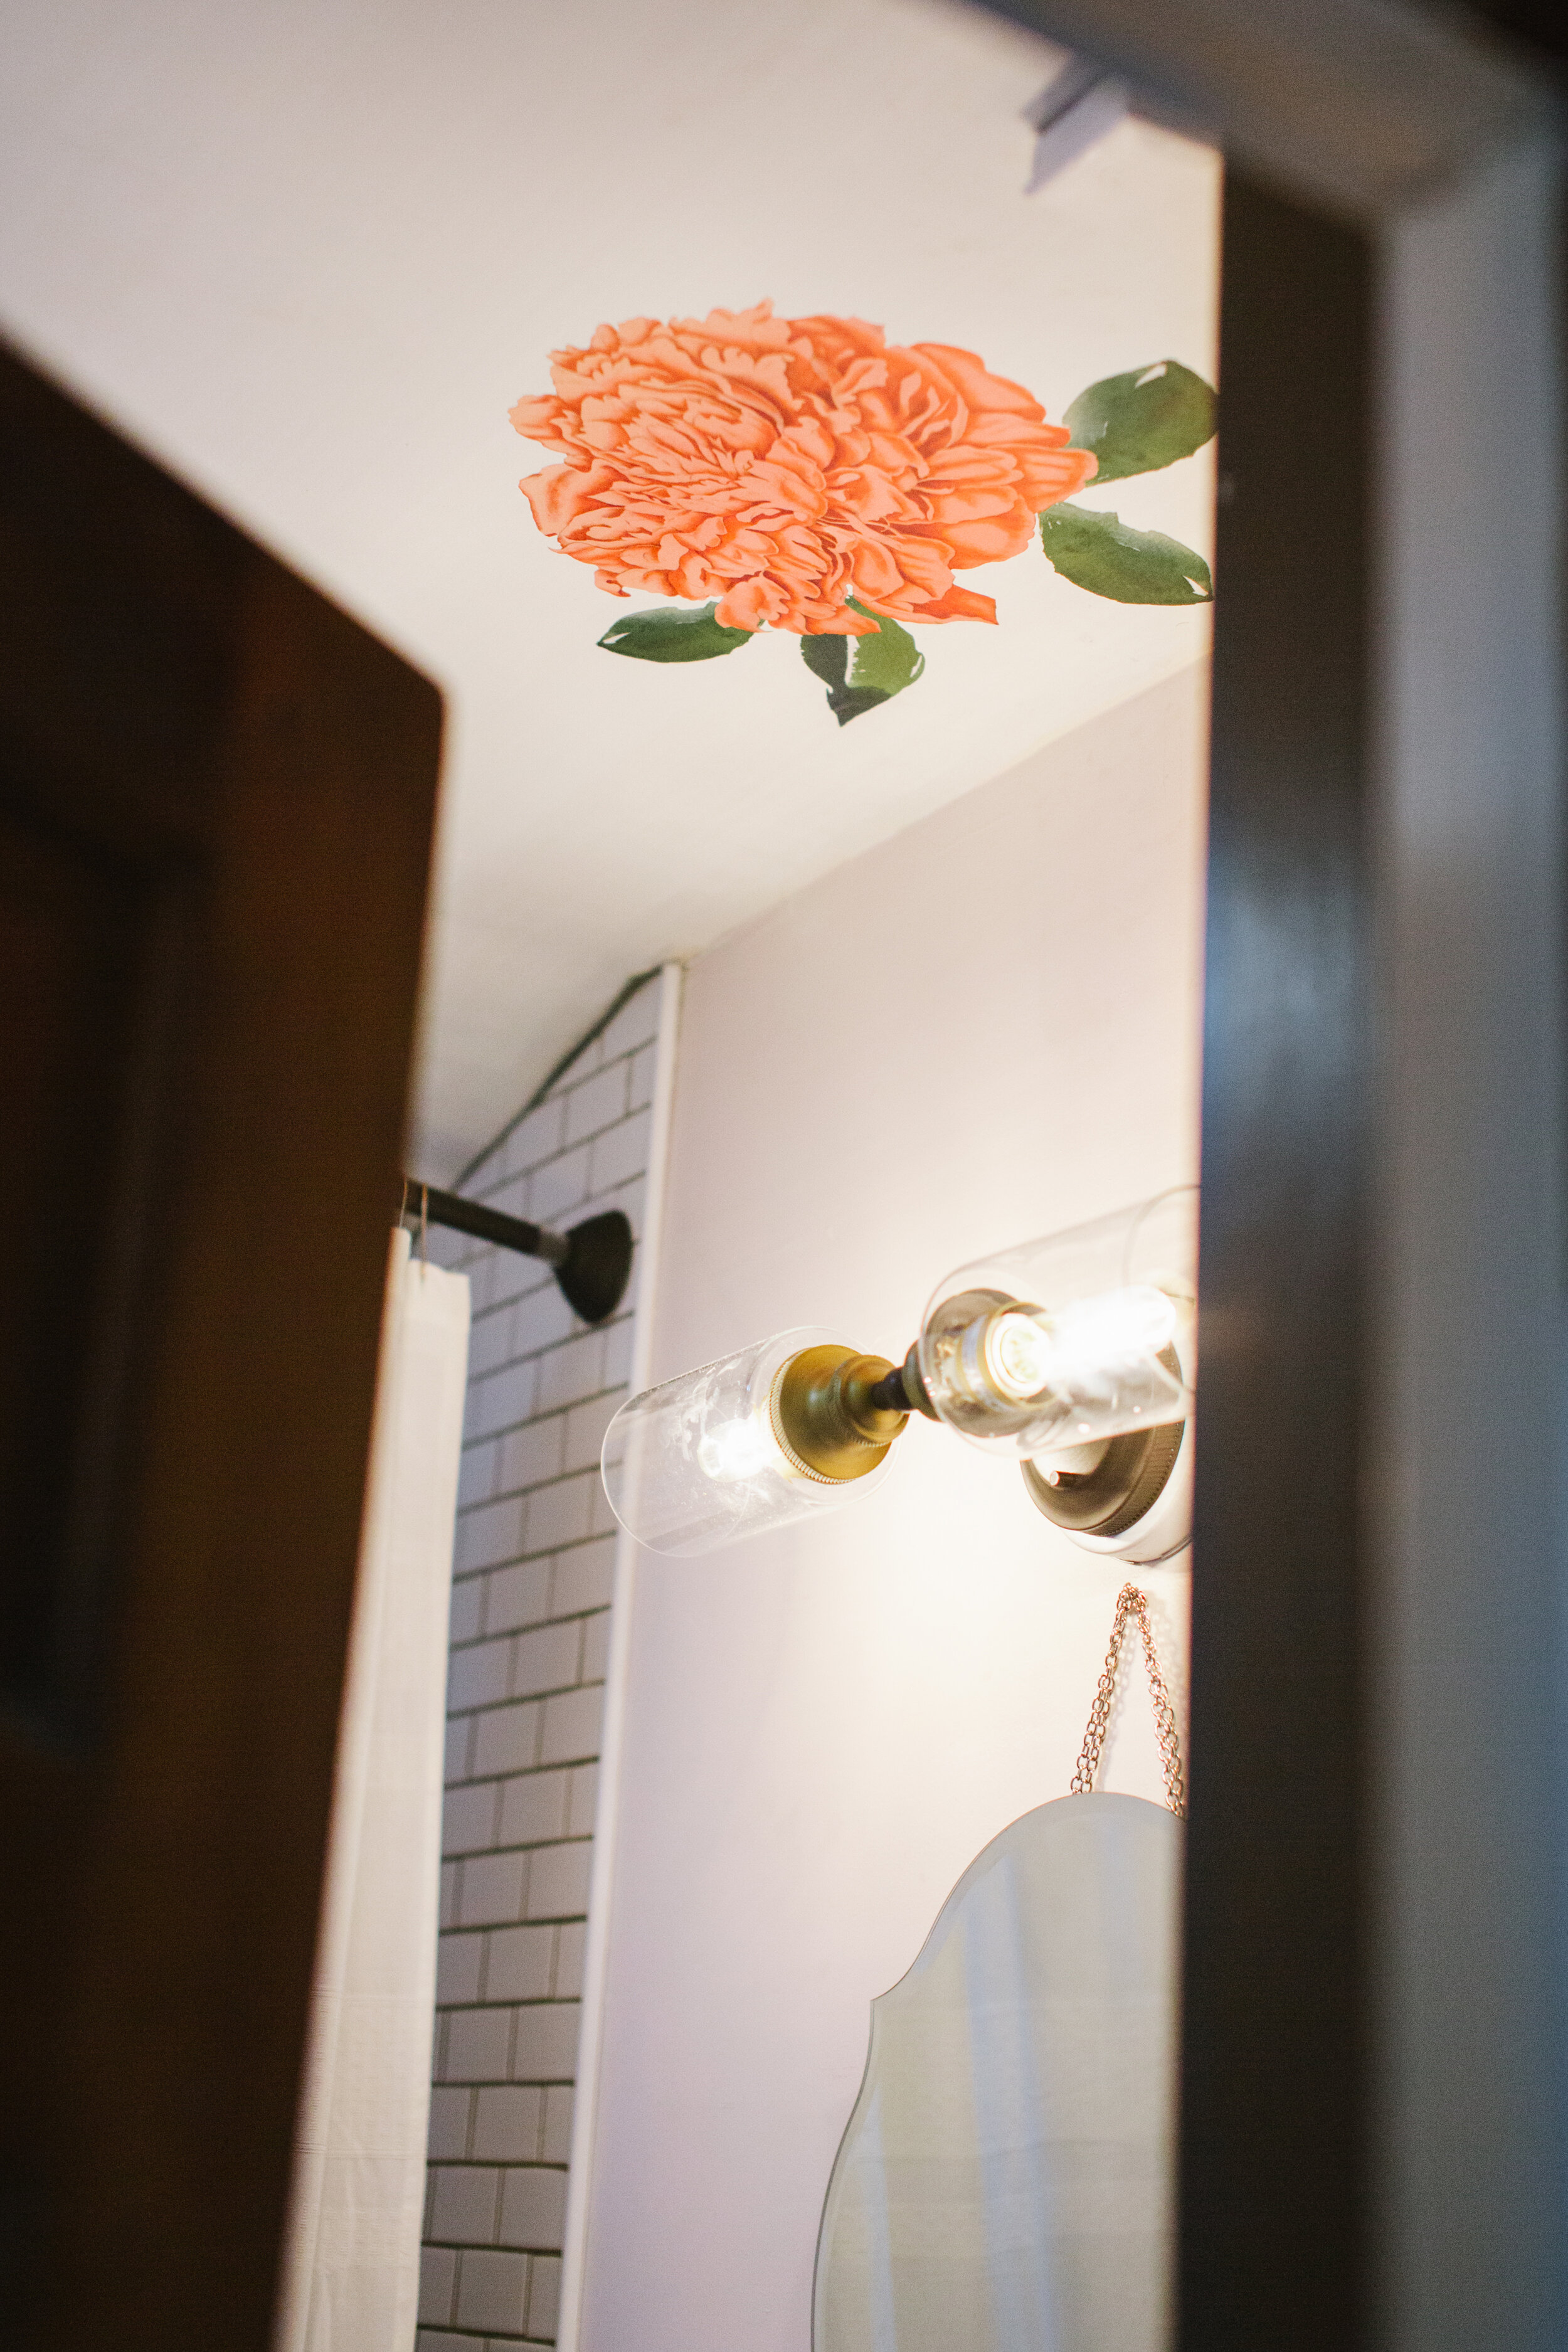 floral decals on ceiling in bathroom